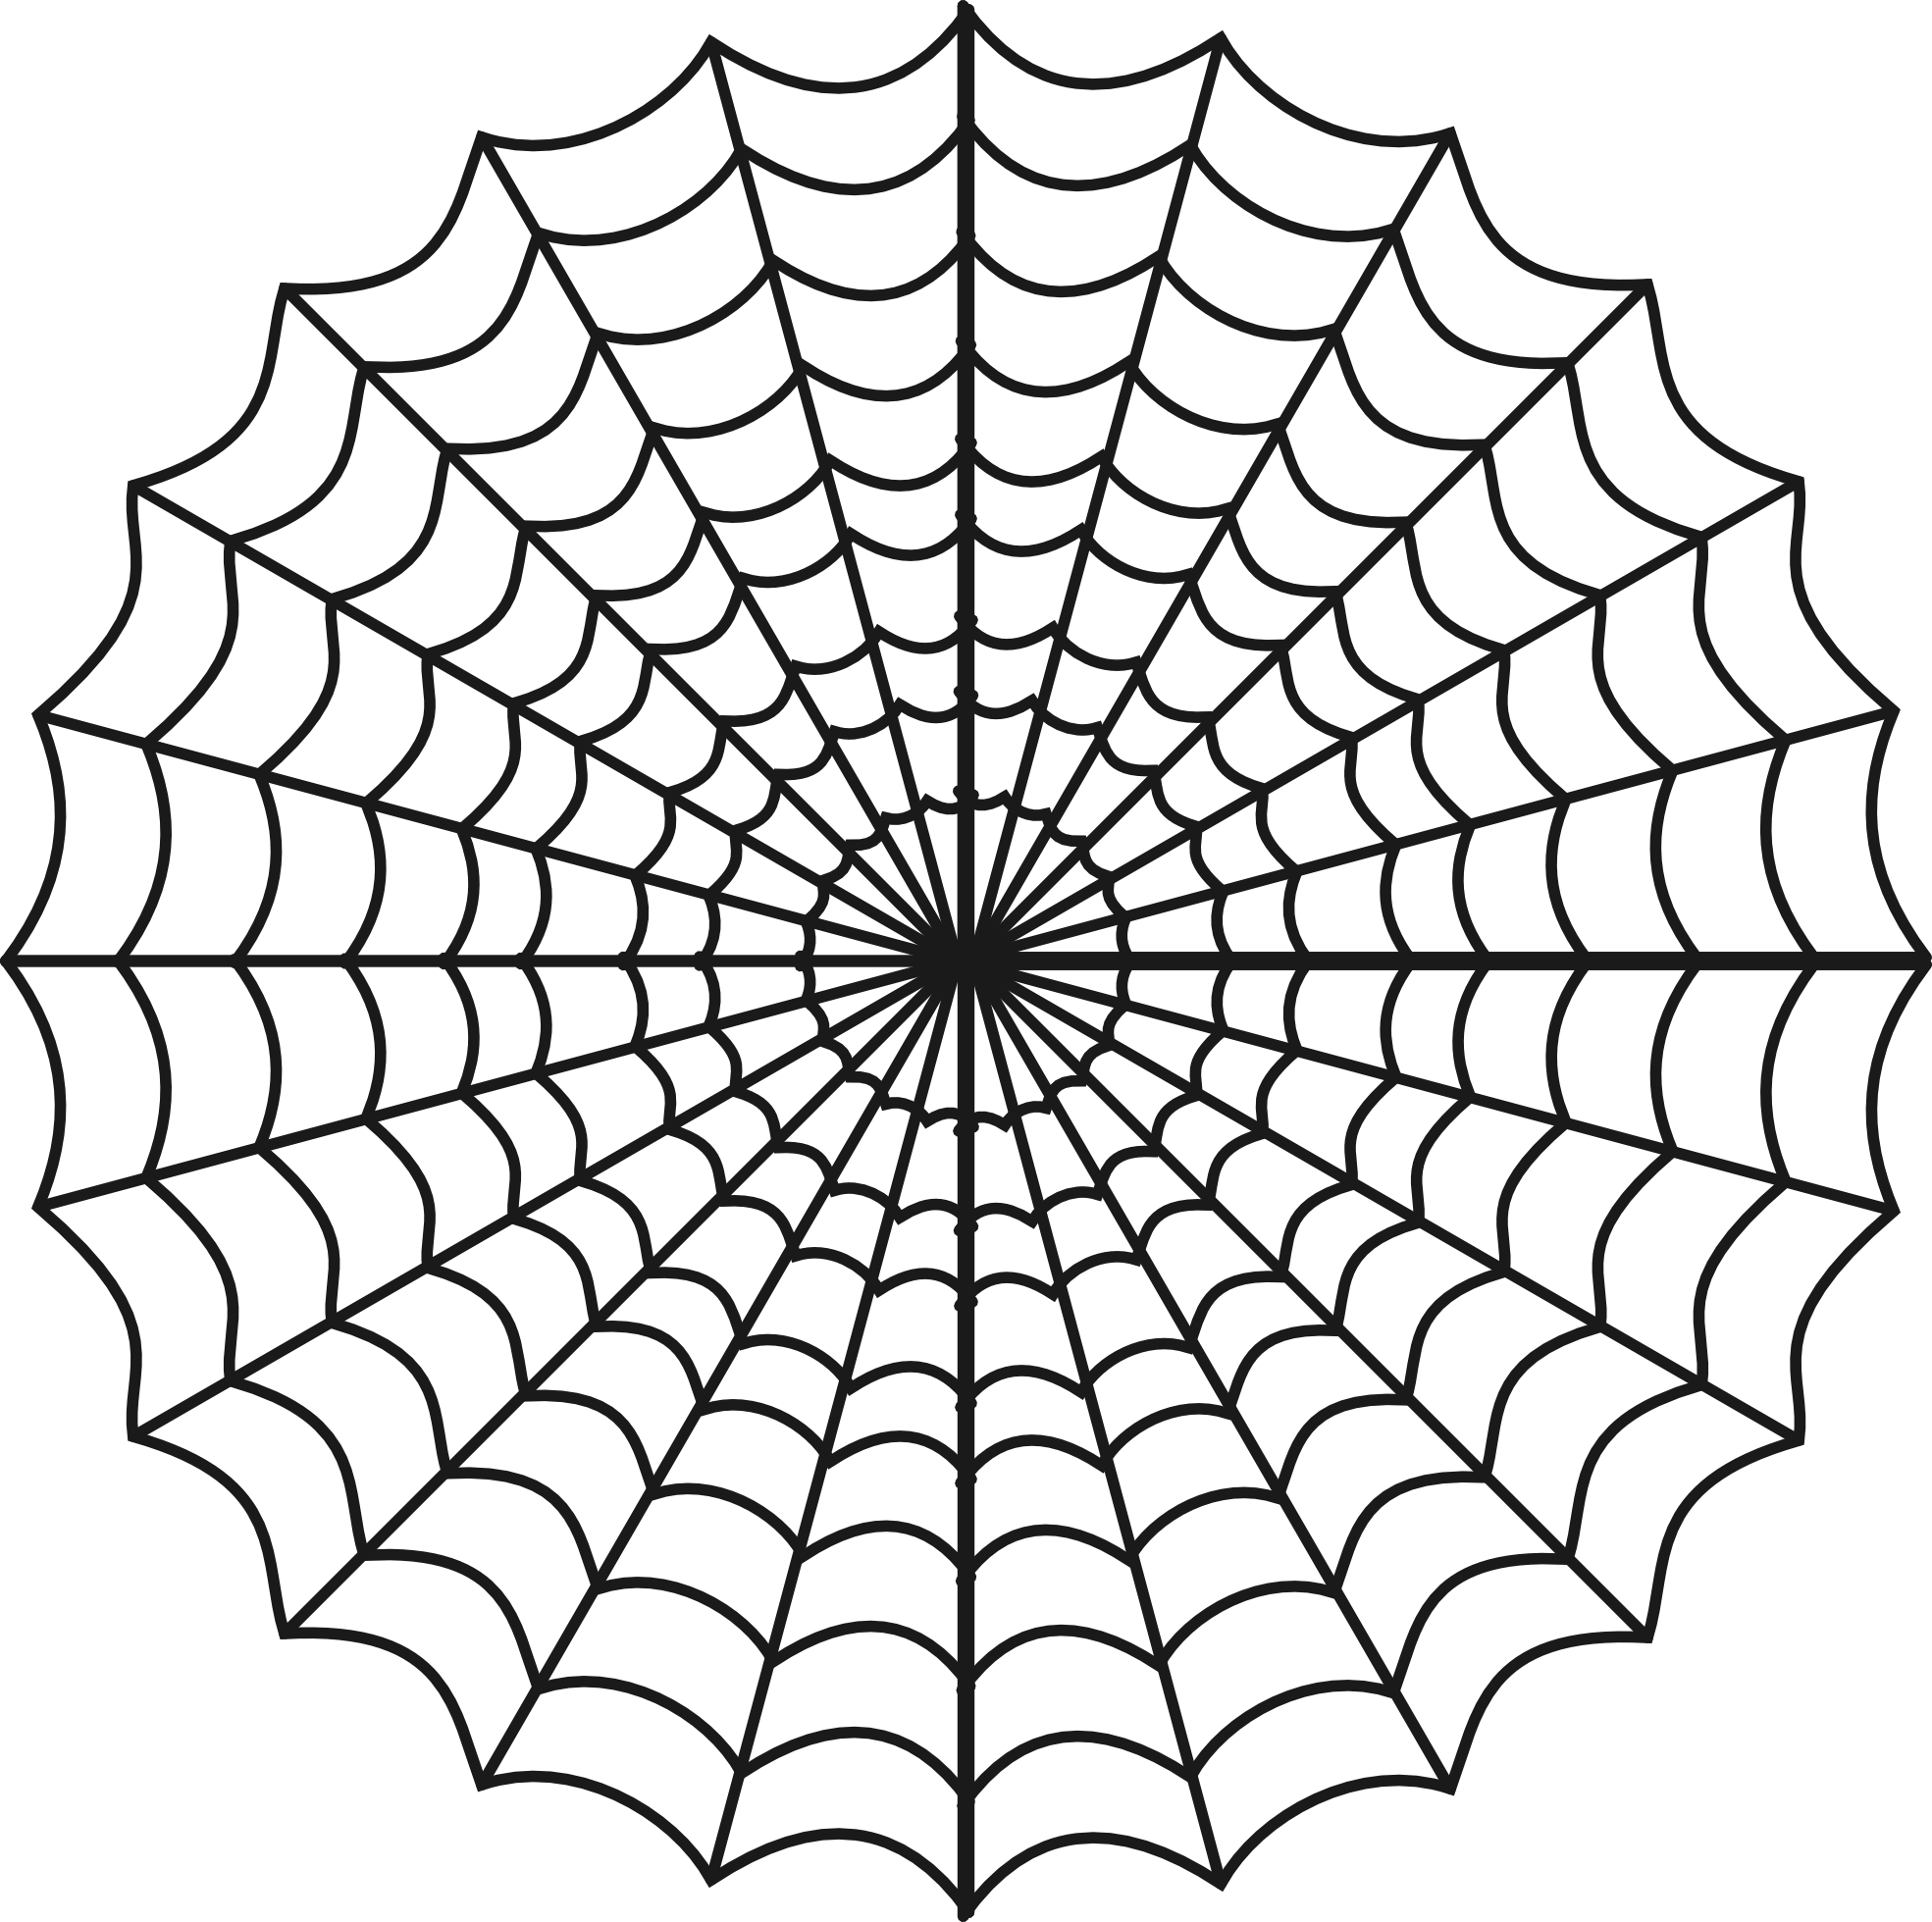 Spider Web Clipart Png | Clipart Panda - Free Clipart Images